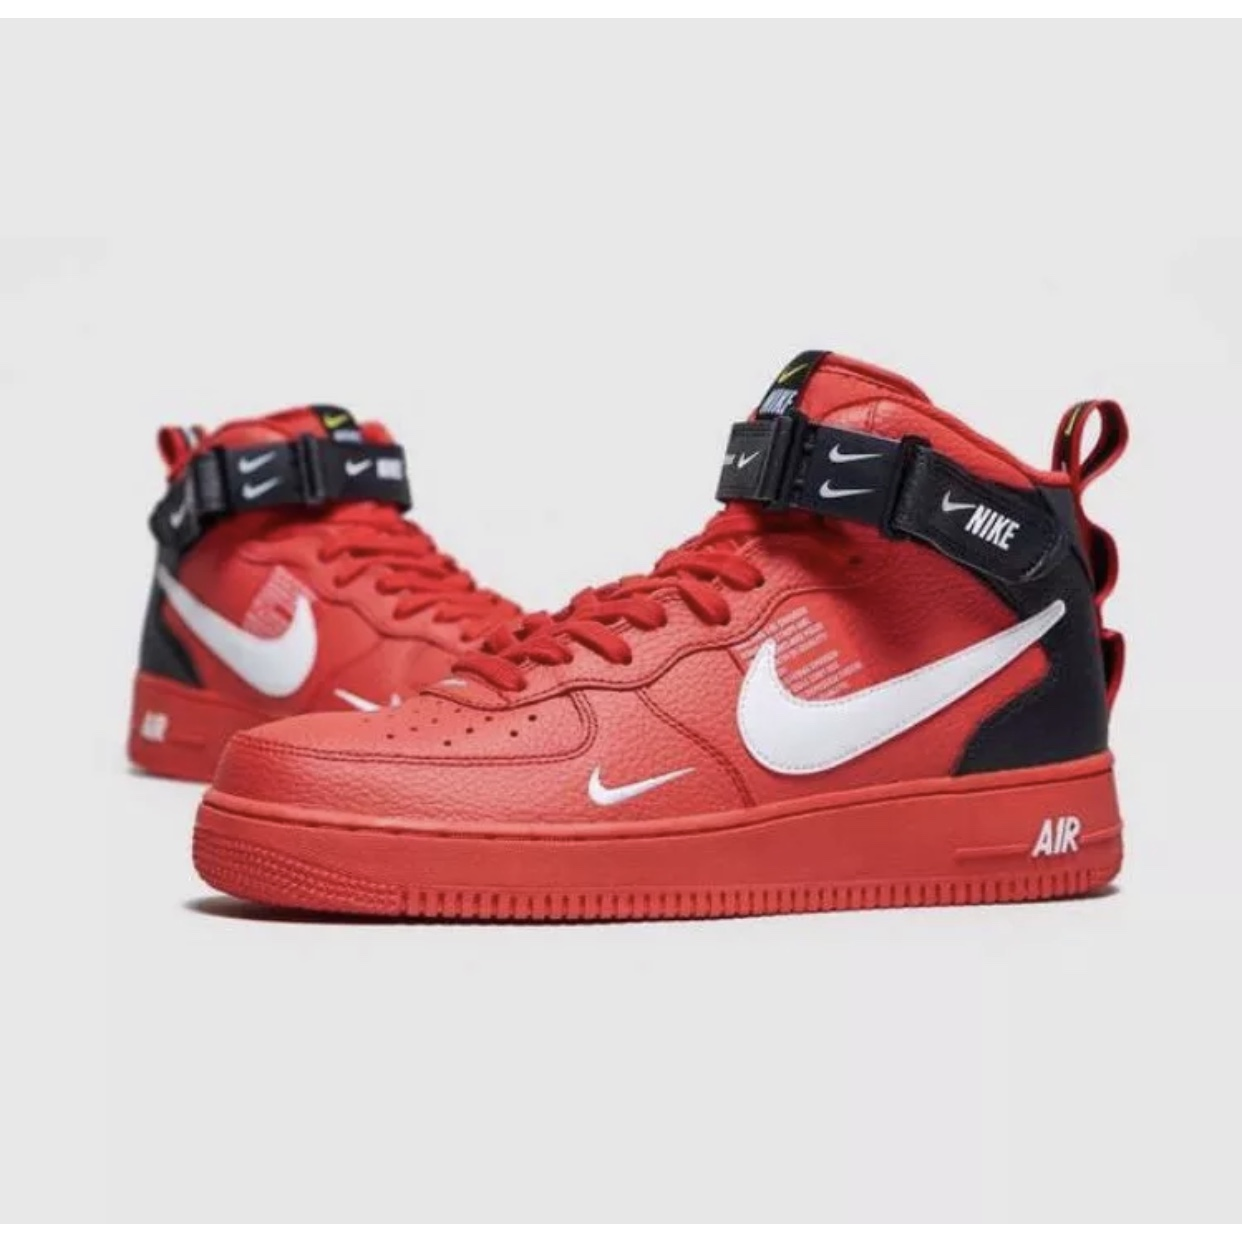 best service d61ad 372fe Nike Air Force 1 '07 LV8 Utility' Mid SOLD OUT... - Depop